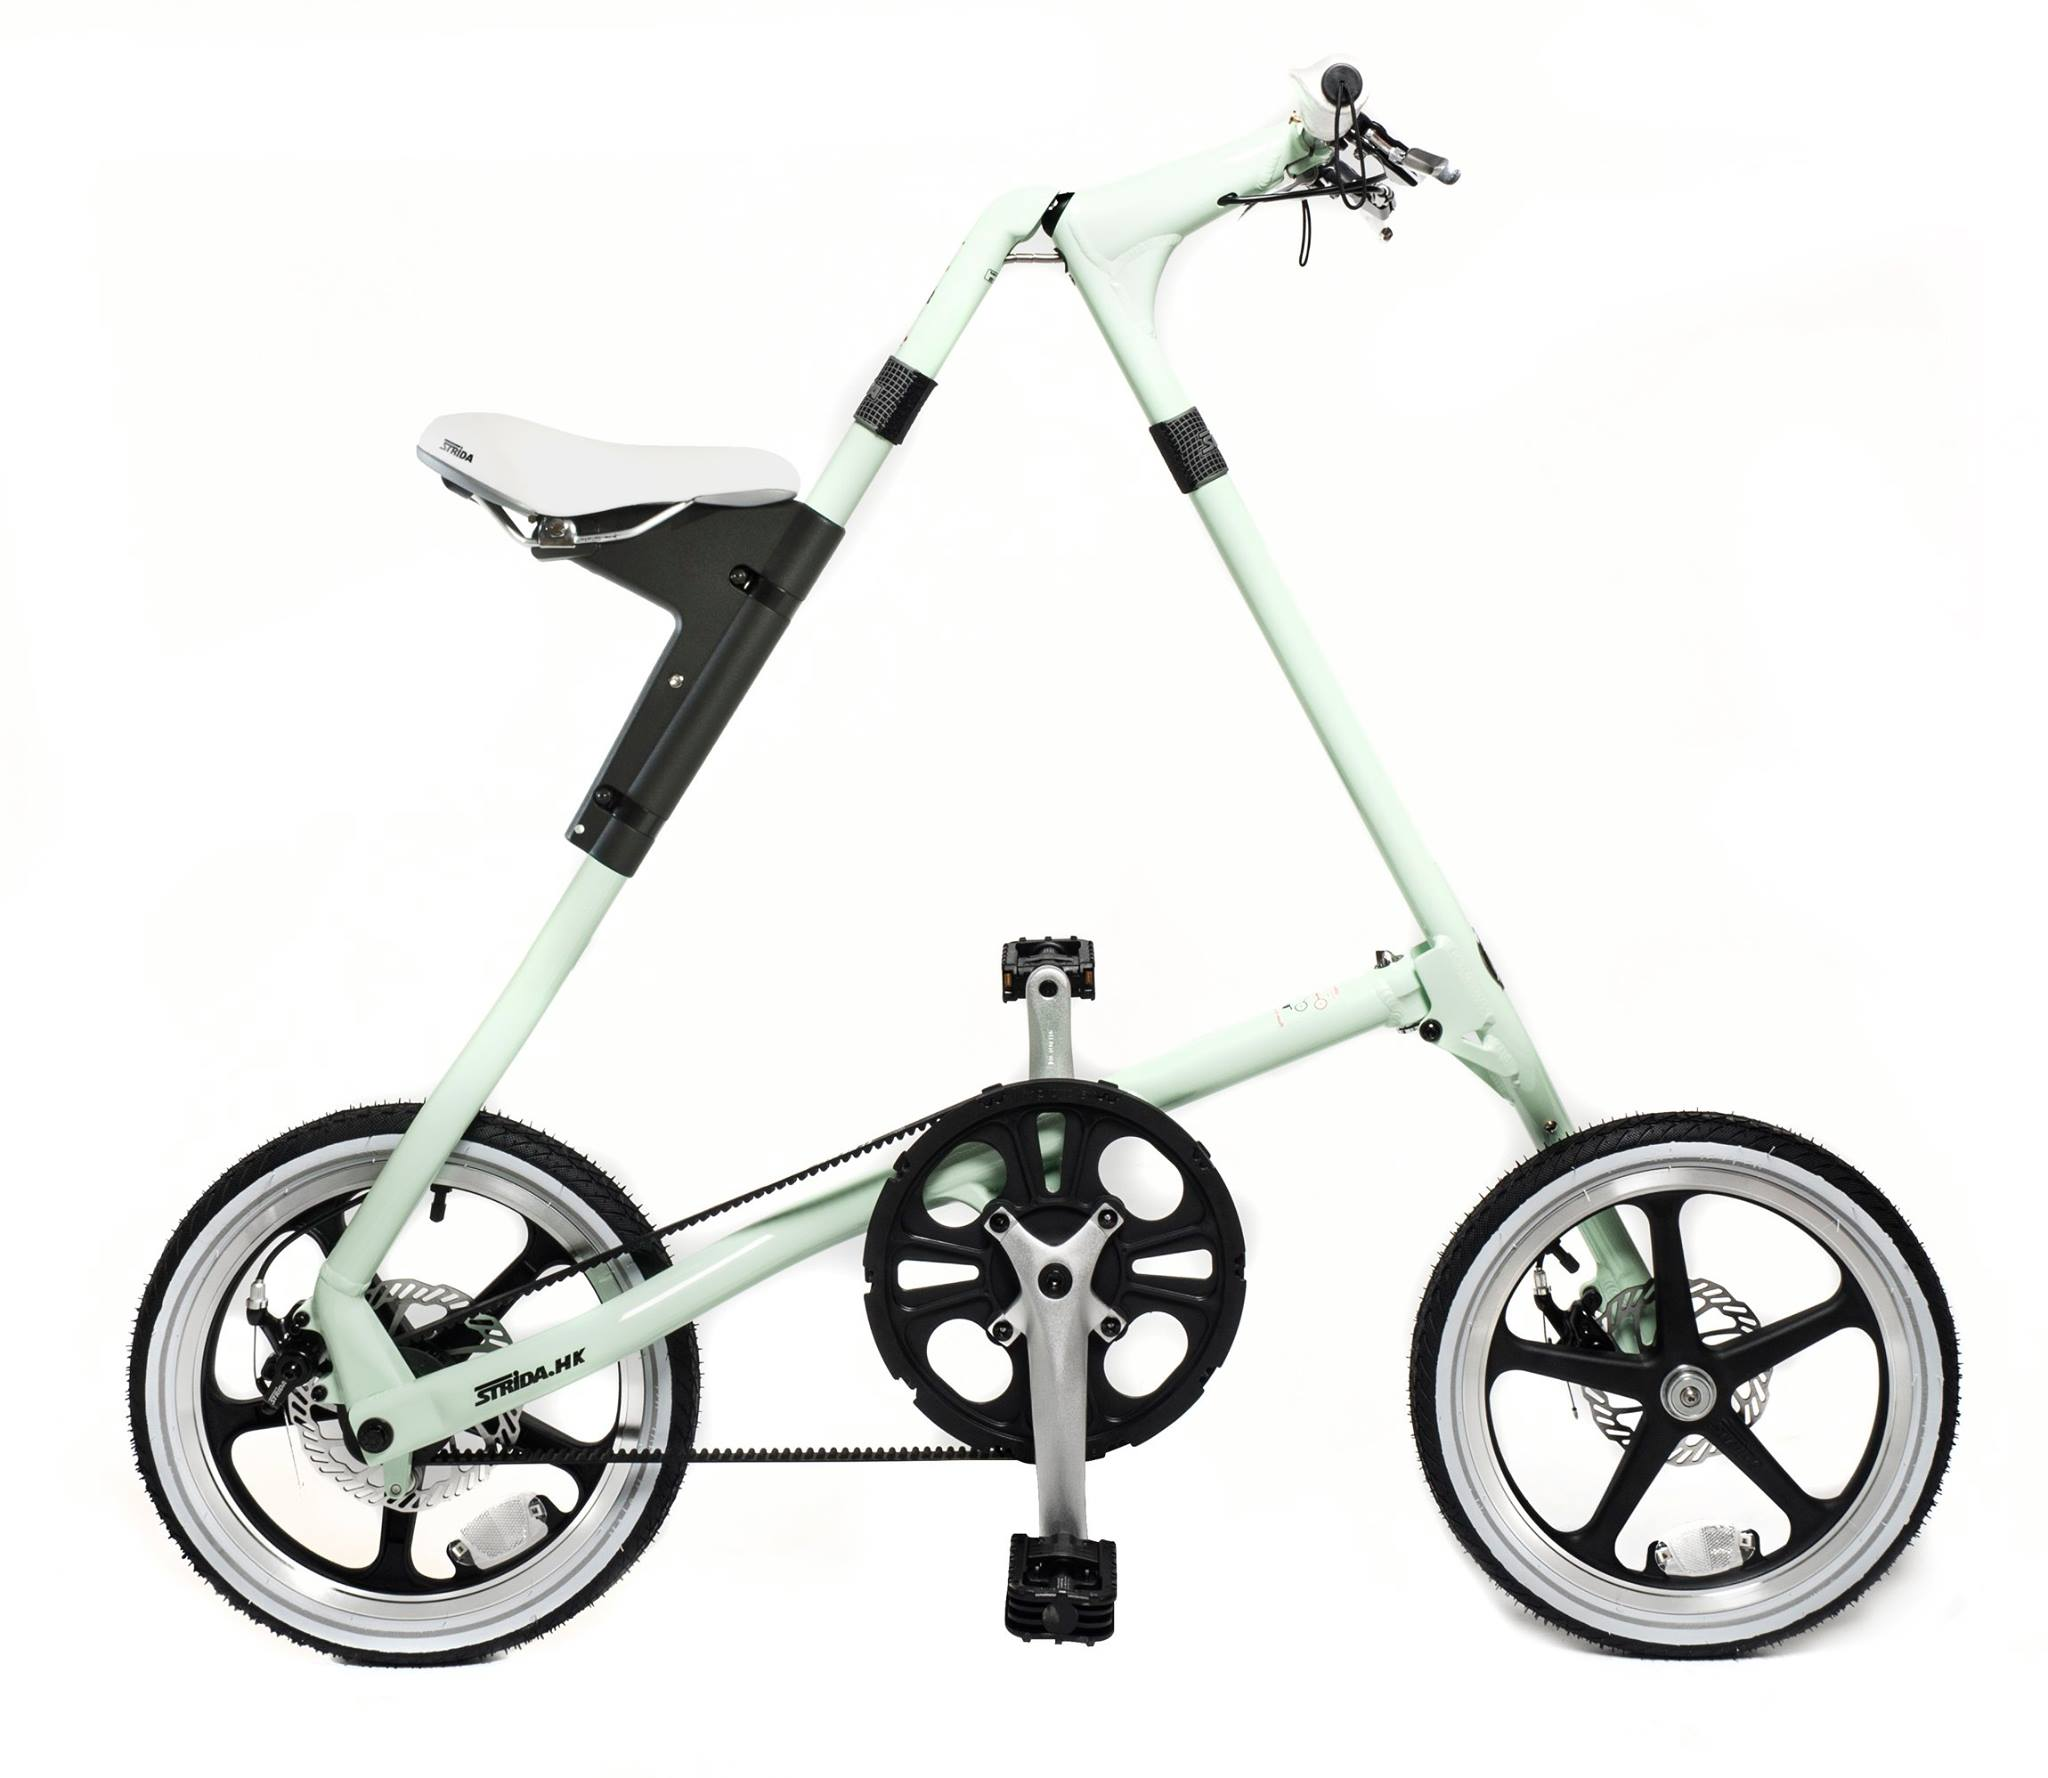 STRiDA LT Pistachio strida lt STRiDA LT 12605395 931238840303527 4291080682449627264 o